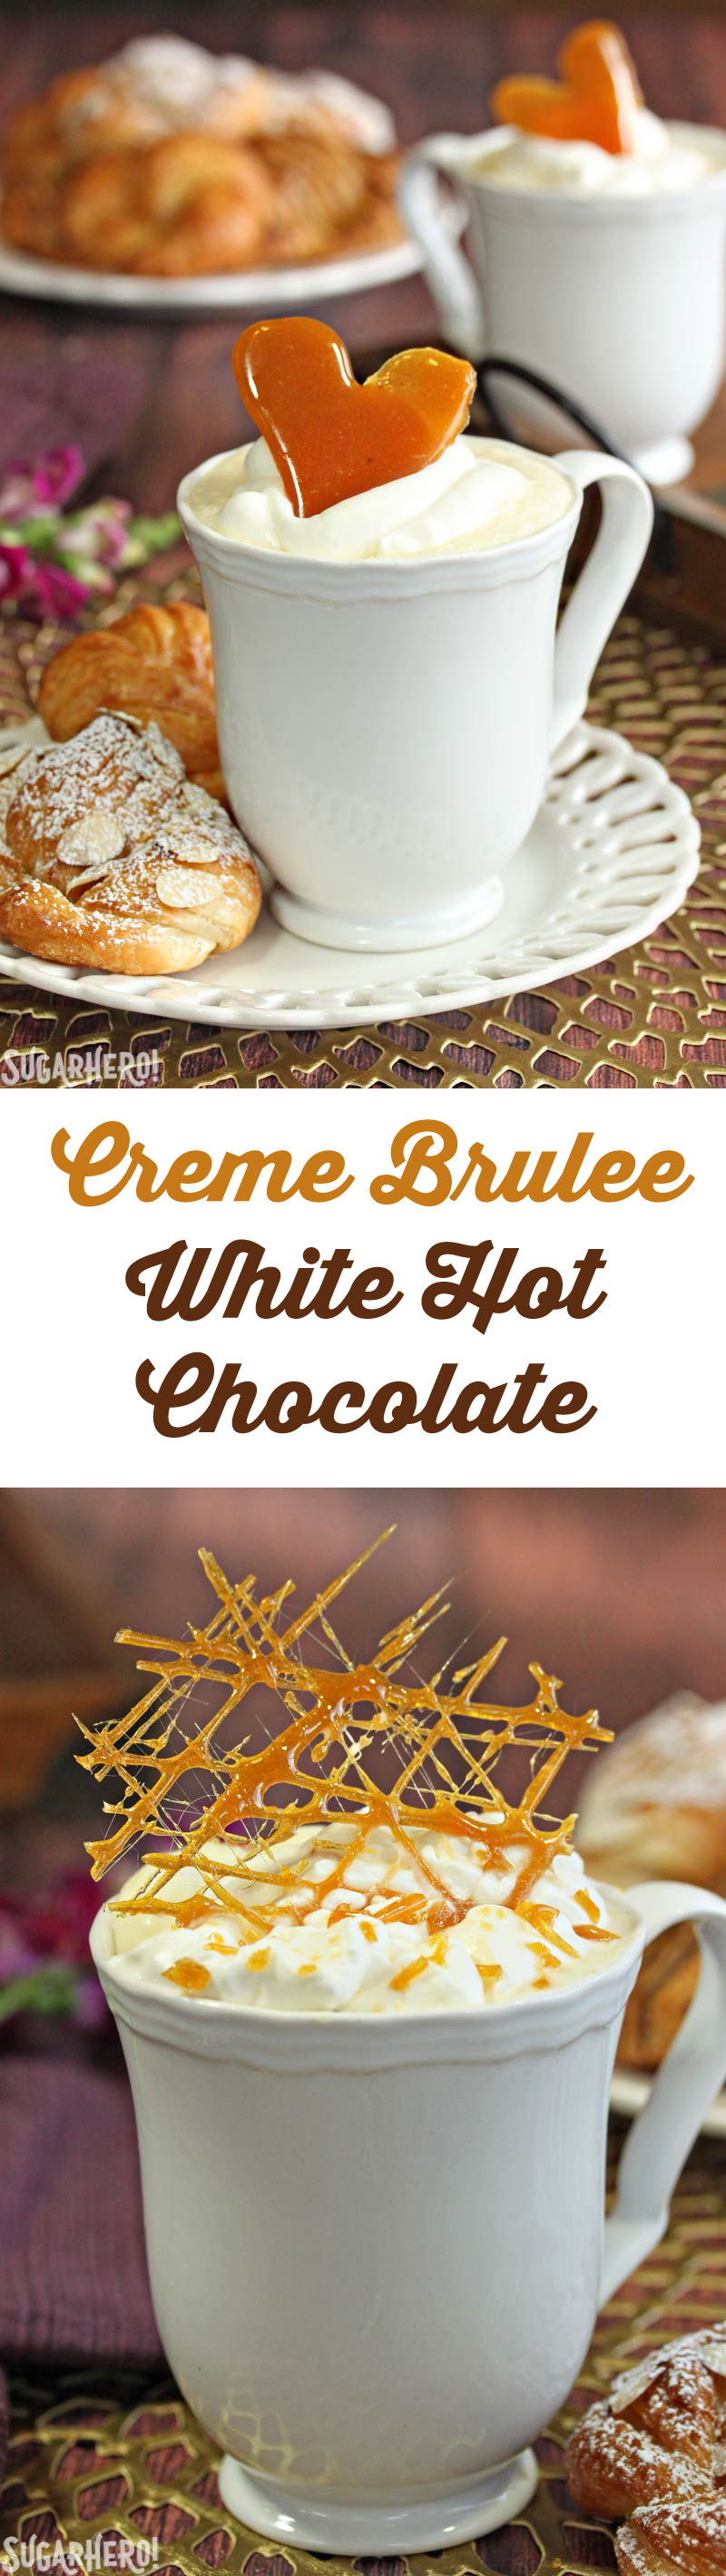 Crème Brulee White Hot Chocolate - white hot chocolate, flavored with vanilla beans and topped with crunchy caramelized sugar! | From SugarHero.com